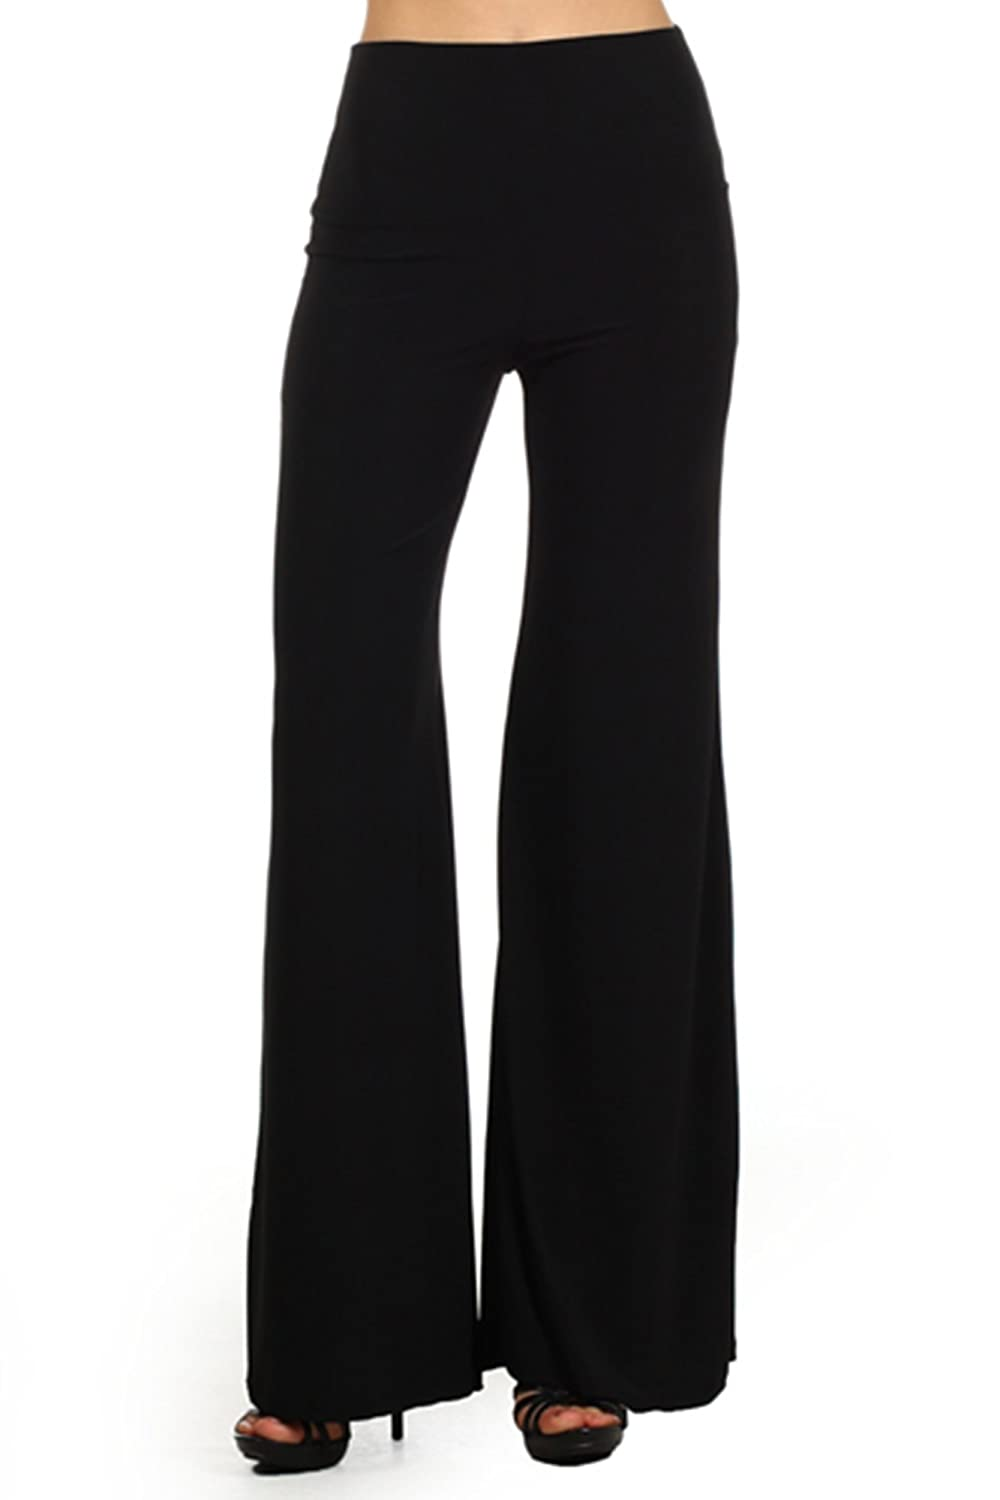 409 Tribal print, knit palazzo pants with a high fold-over waist and a wide leg Small, Black